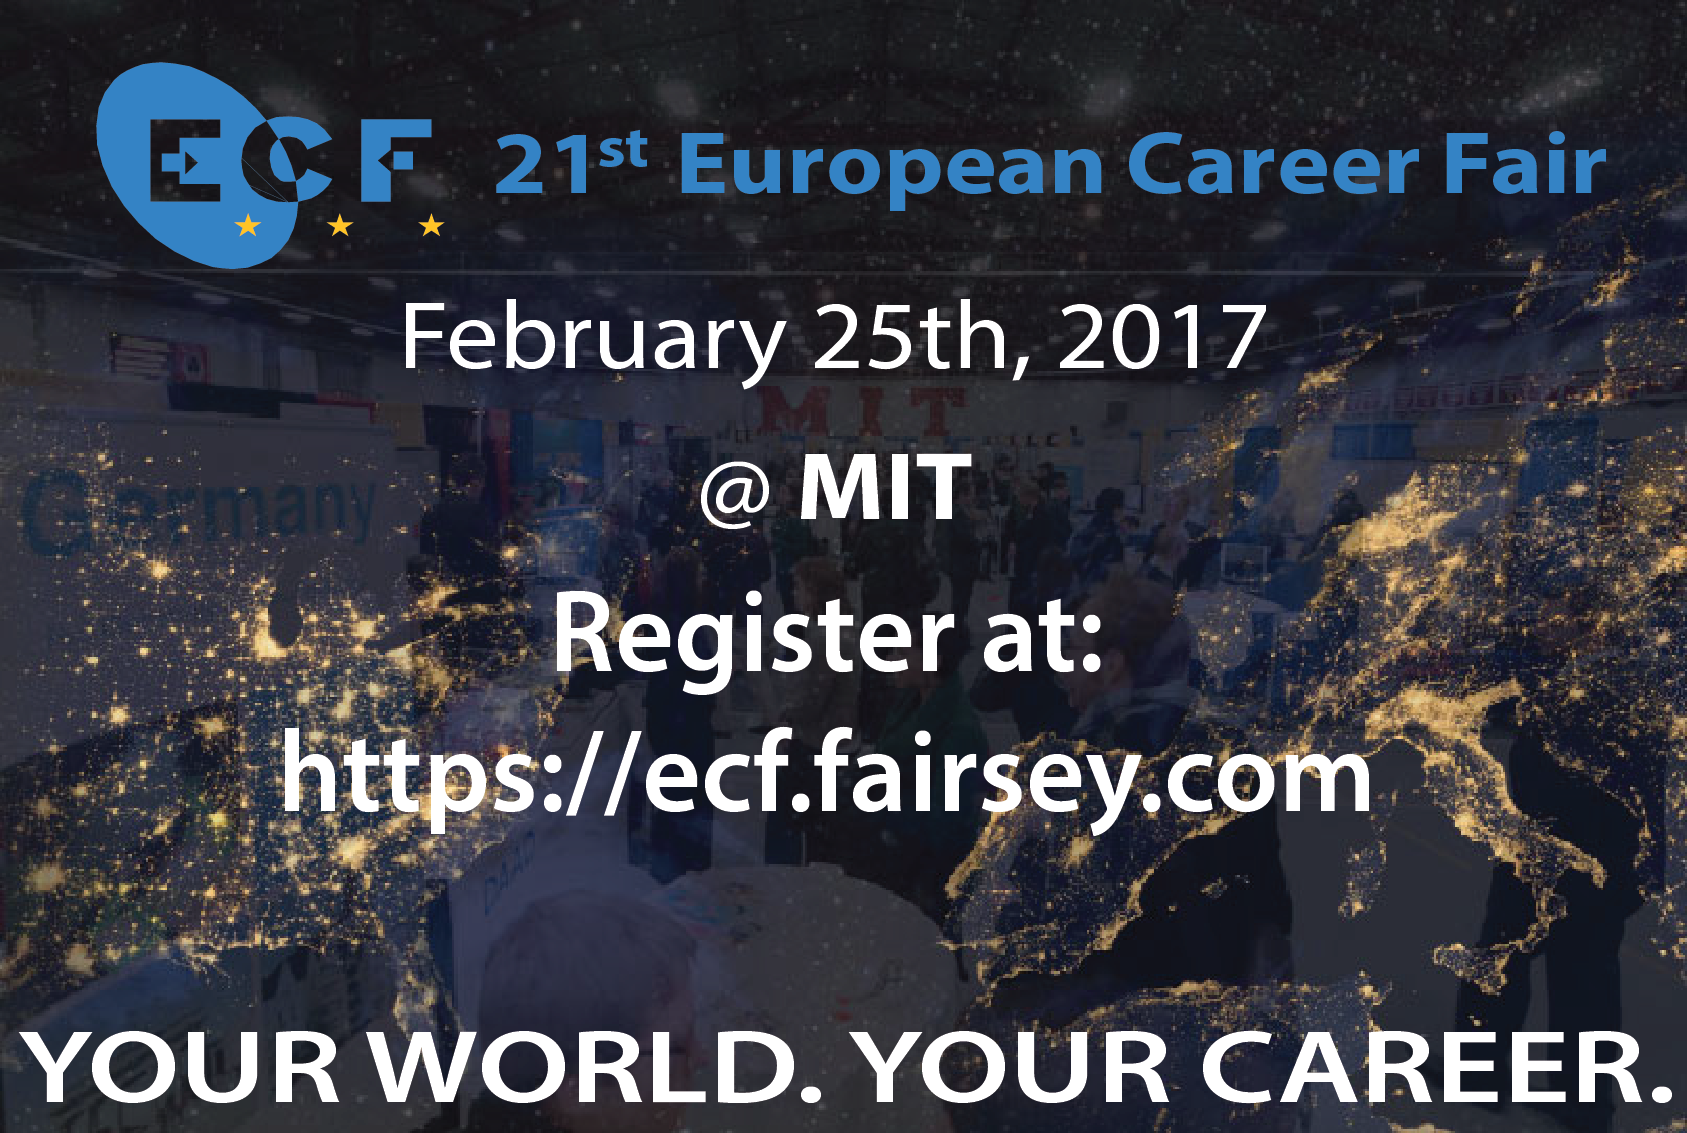 21st European Career Fair. February 25th, 2017 @ MIT. Register at: https://ecf.fairsey.com